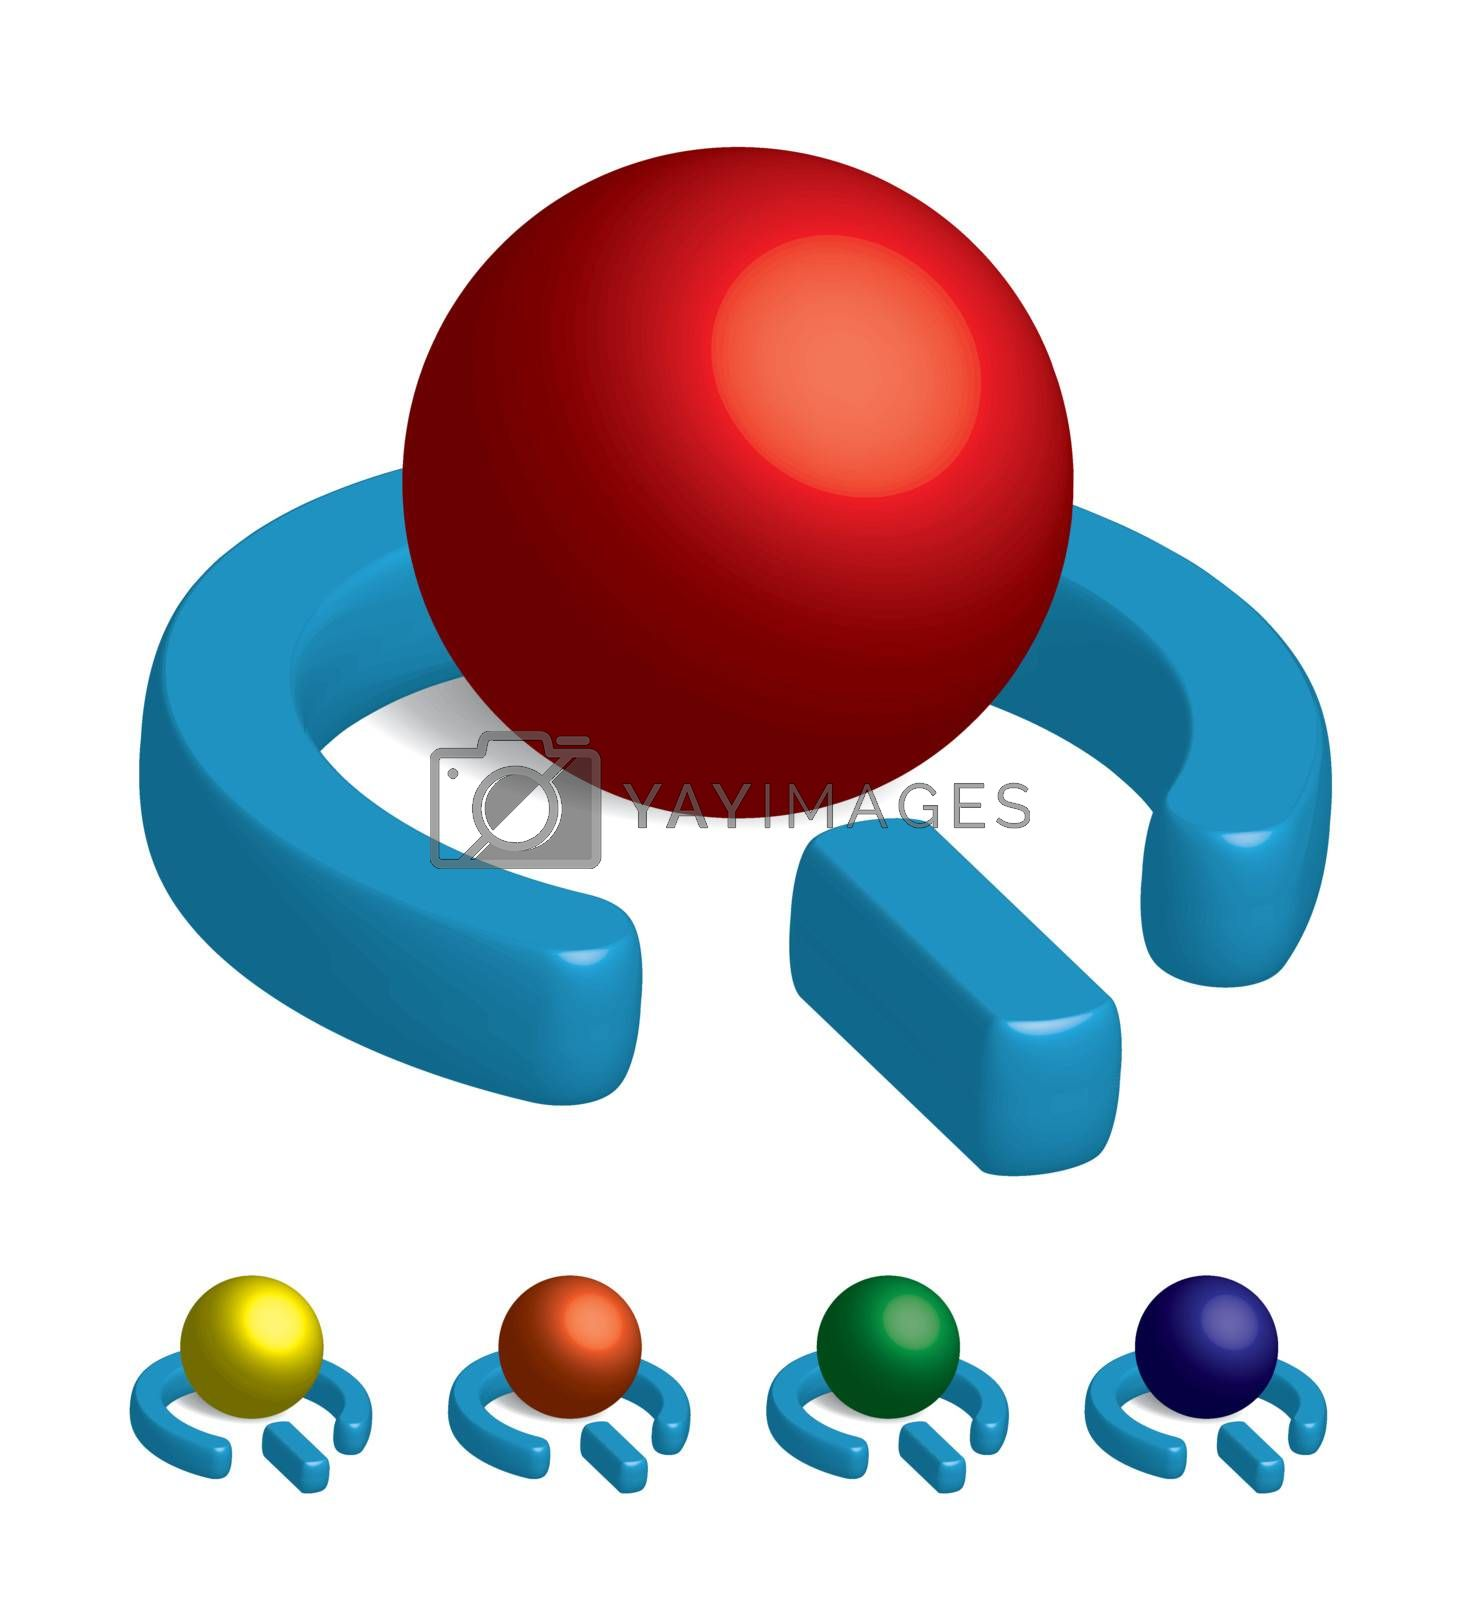 A 3D vector power symbol orb in a variety of colors.